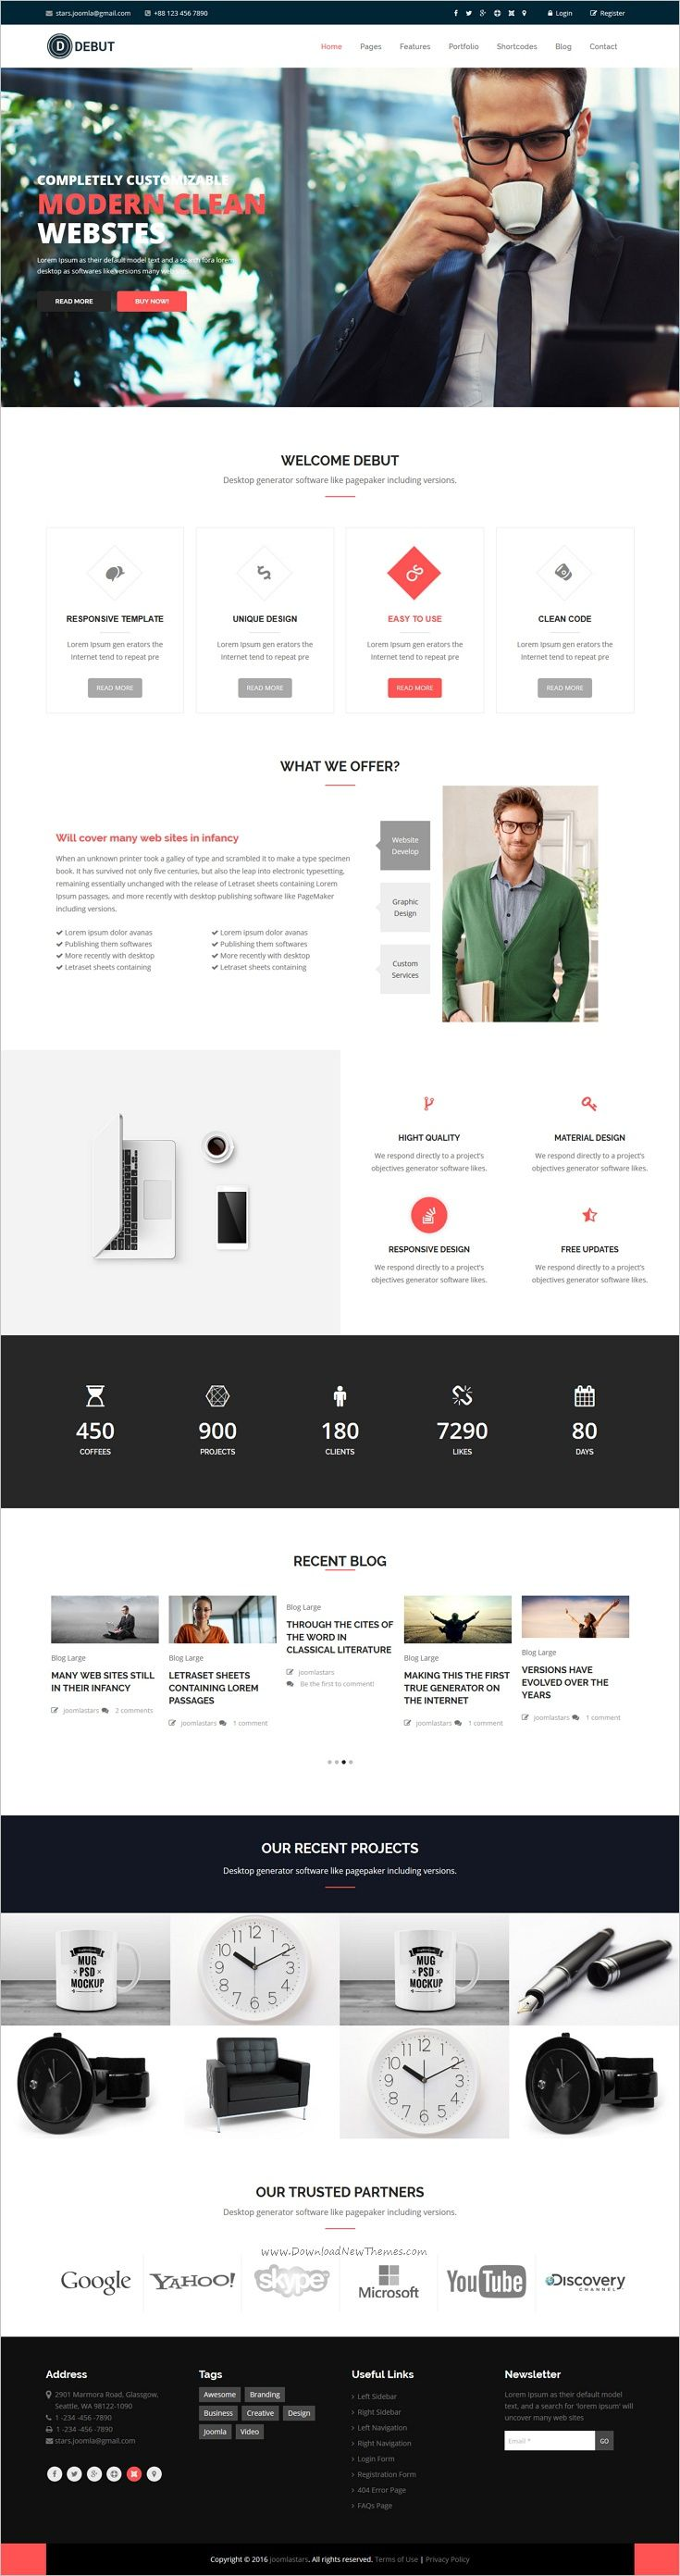 Debut is a modern and professional #responsive #Joomla template for #corporate company, business, blog and portfolio website with 11+ multipurpose homepage layouts download now➩ https://themeforest.net/item/debut-the-multipurpose-responsive-joomla-theme/19077114?ref=Datasata